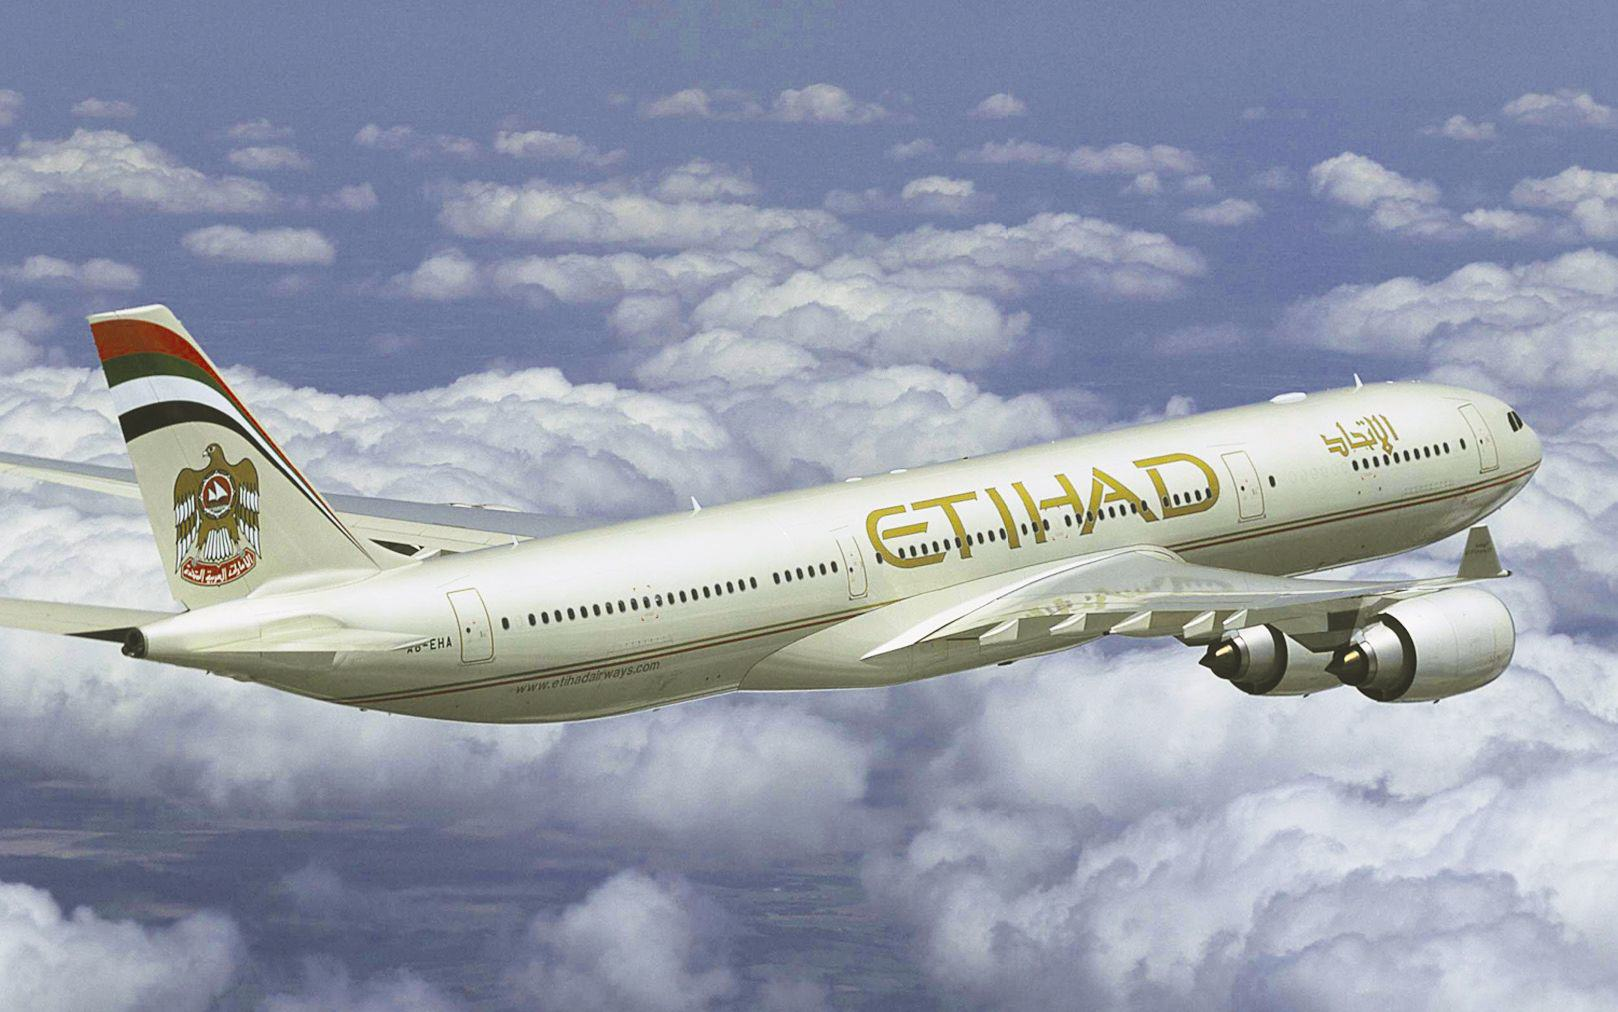 Passenger Sues Etihad Airways After Being Seated Next To Obese Man 55bb79d9a12de